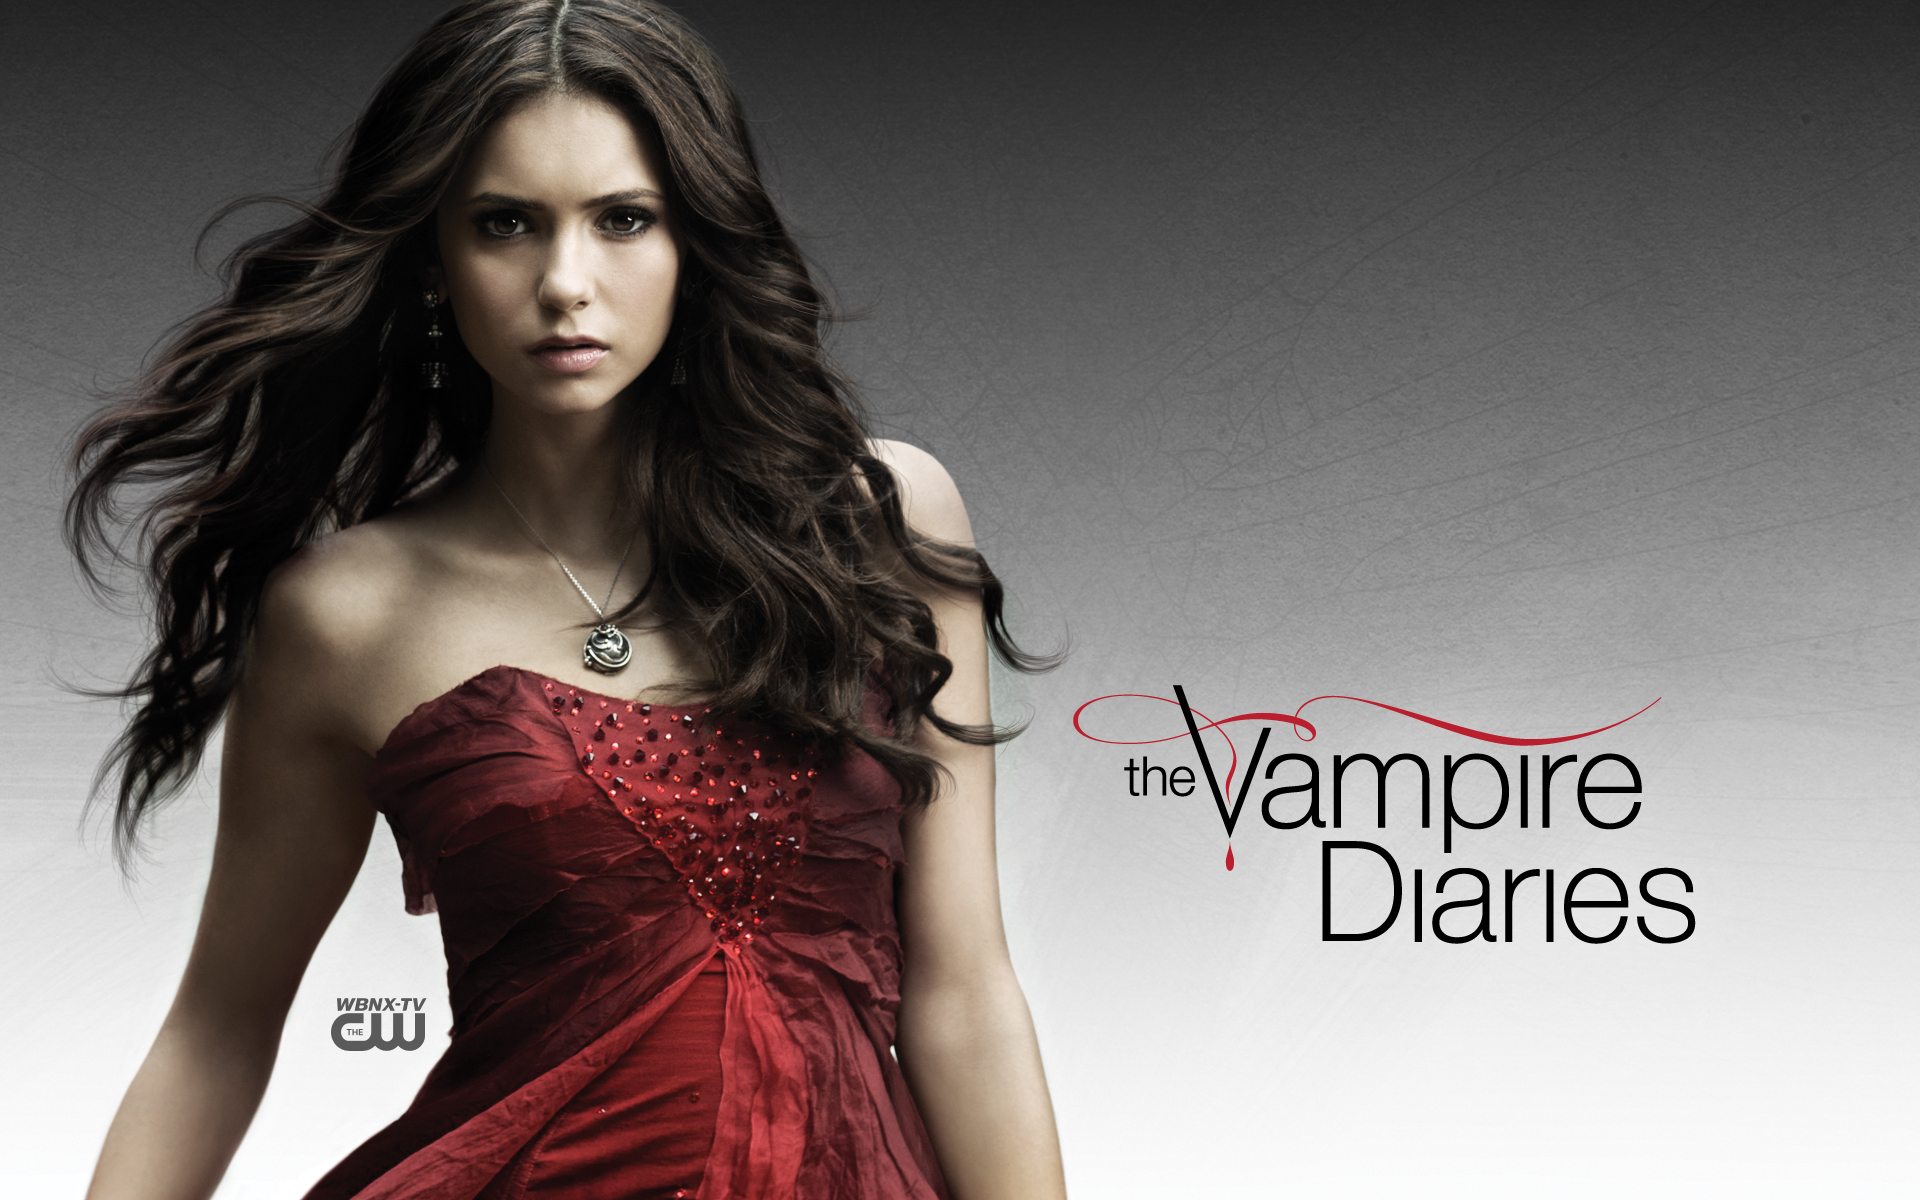 2880x1800 Vampire Diaries Nina Dobrev Macbook Pro Retina HD 4k Wallpapers, Images, Backgrounds, Photos and Pictures